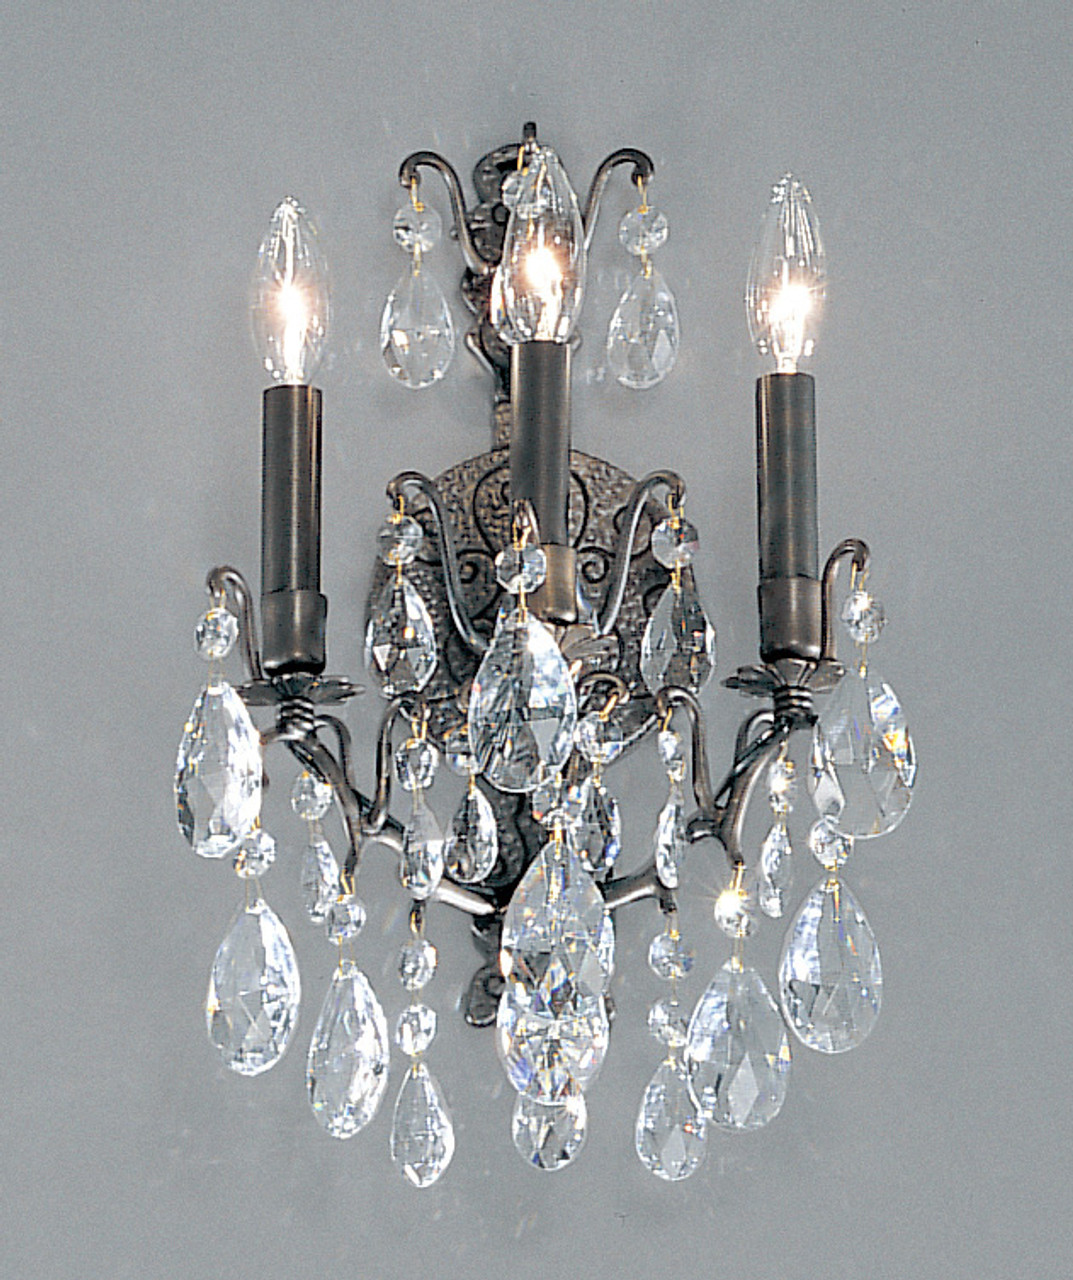 Image of: Classic Lighting 9001 Ab Sc Versailles Crystal Wall Sconce In Antique Bronze At Clw Lighting